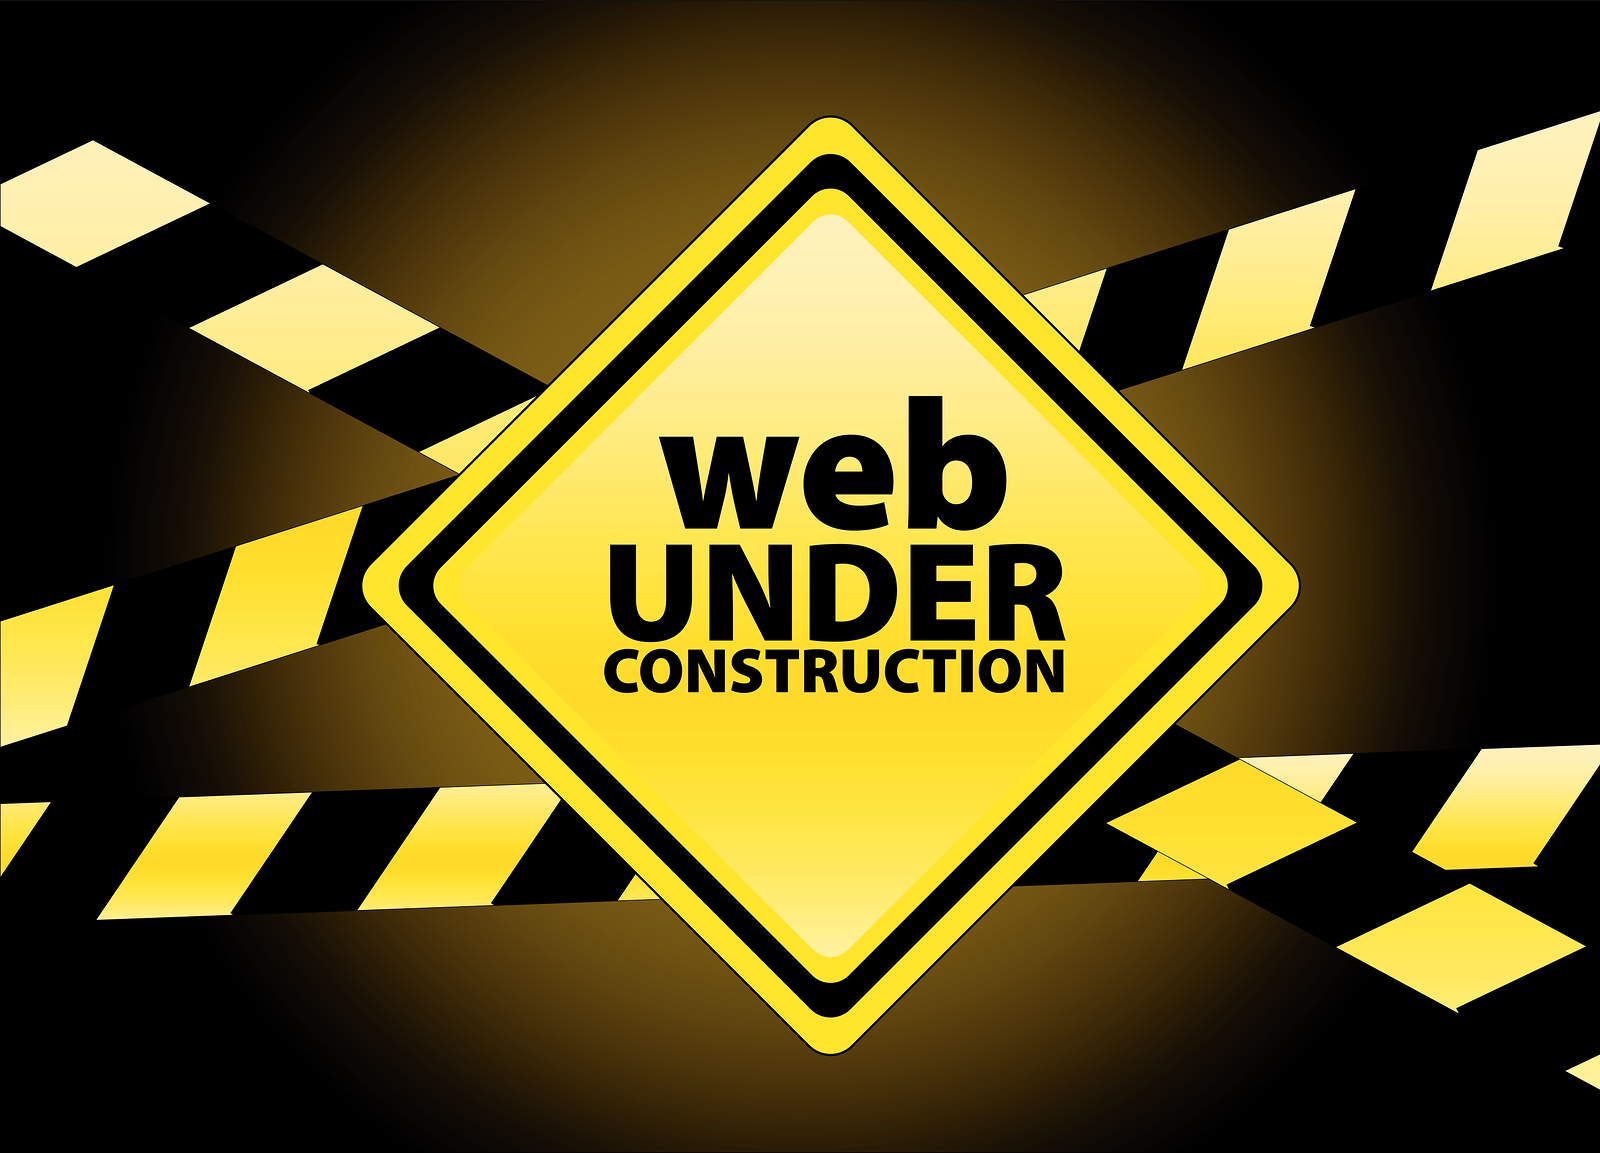 Web-under-construction (1)